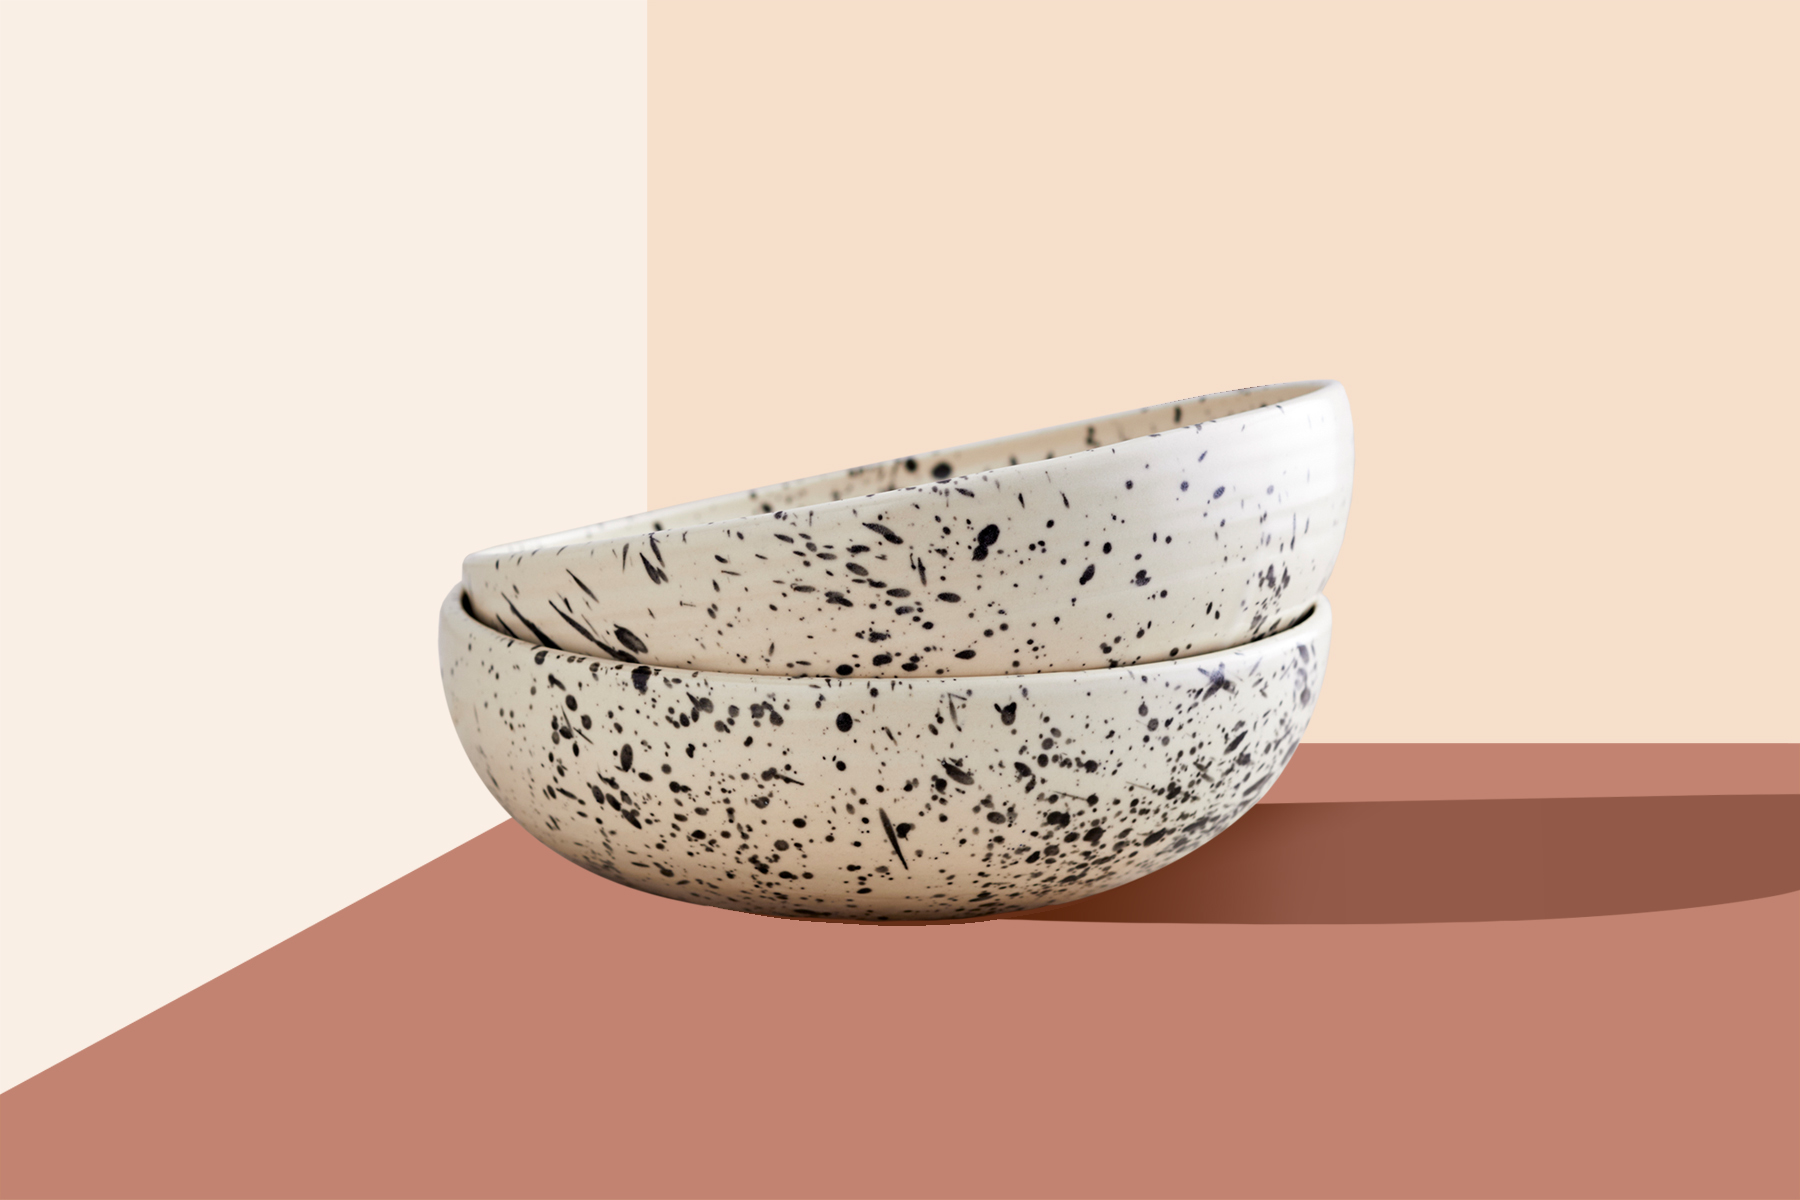 Two bowls with a black and white pattern are stacked and sitting on a background with a geometric color pattern.